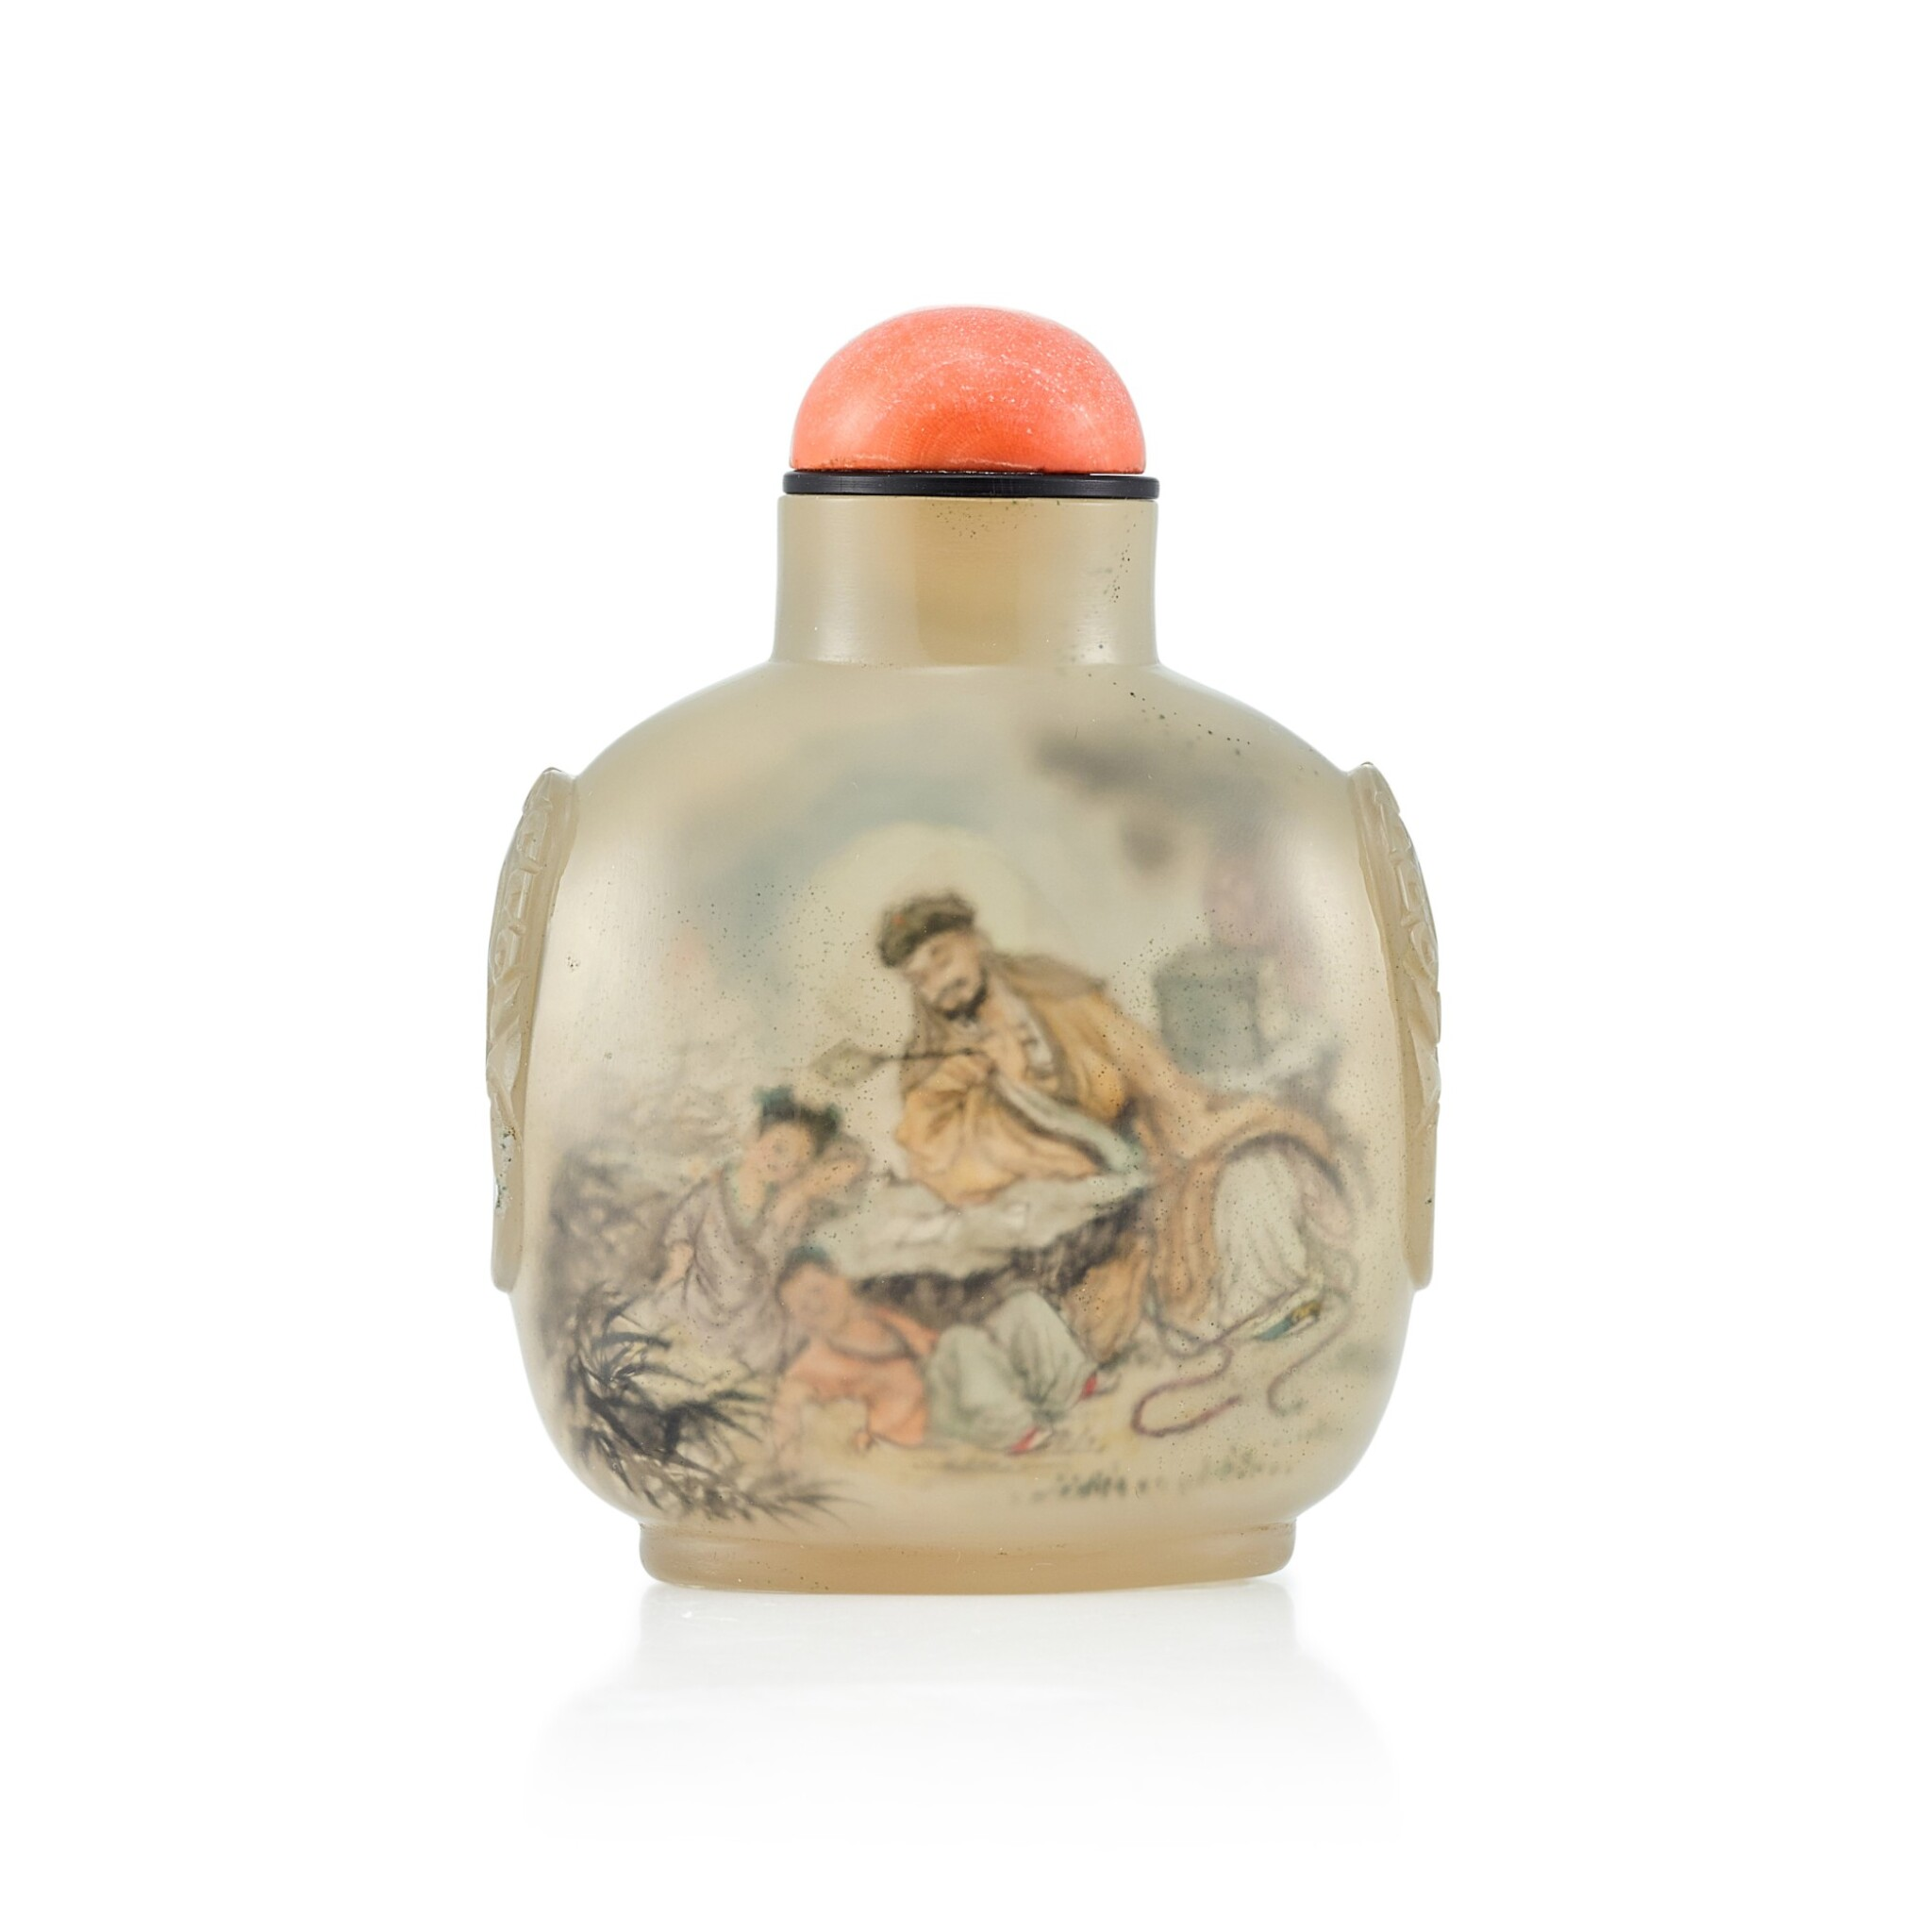 View full screen - View 1 of Lot 3002. An Inside-Painted Agate Snuff Bottle By Wang Xisan, Dated Wuwu Year, Corresponding to 1978 | 戊午(1978年) 王習三作瑪瑙內畫鼻煙壺 《戊午秋月王習三作》款.